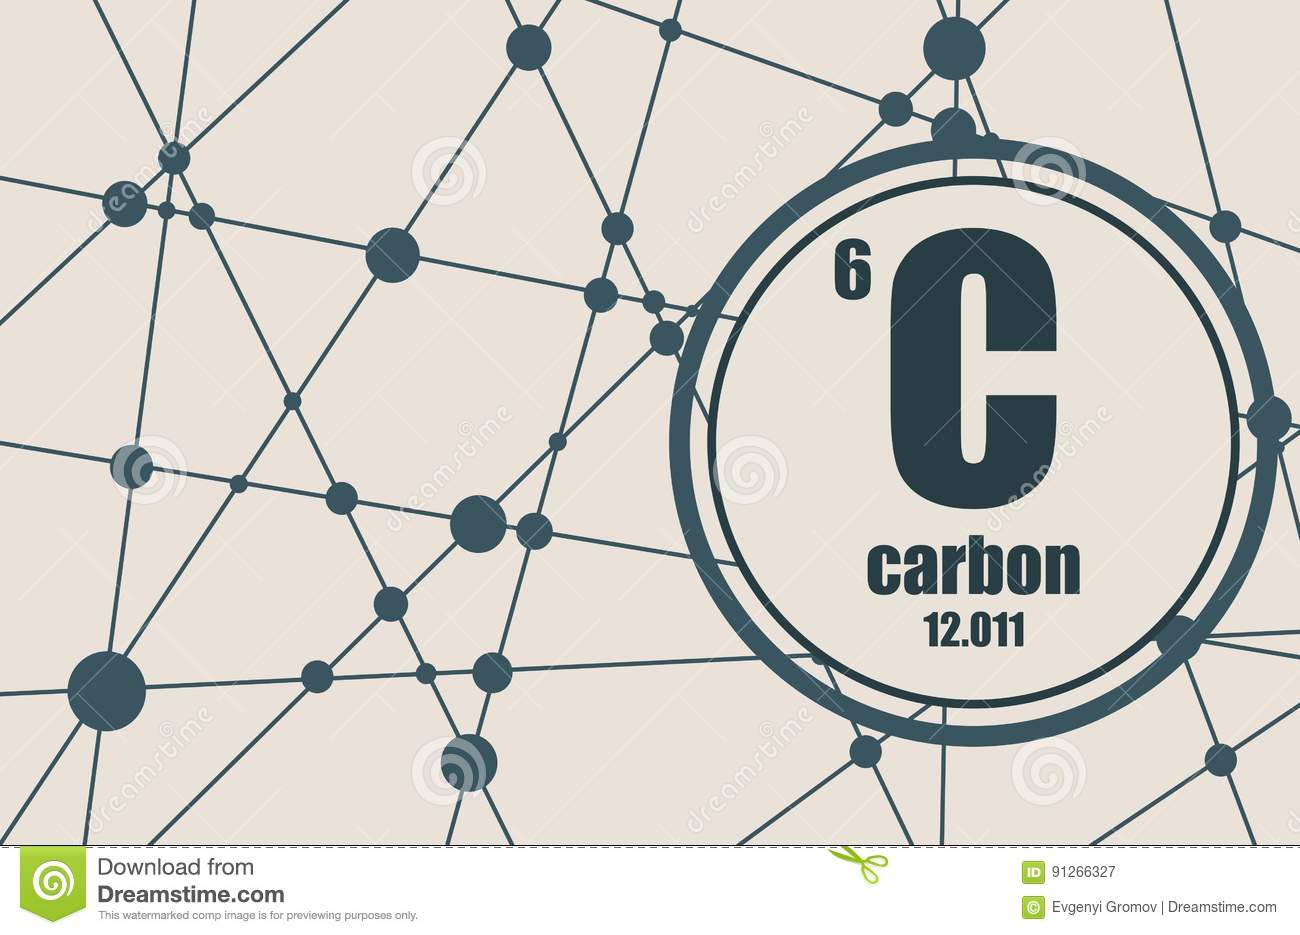 Carbon chemical element stock vector illustration of periodic download carbon chemical element stock vector illustration of periodic 91266327 urtaz Image collections